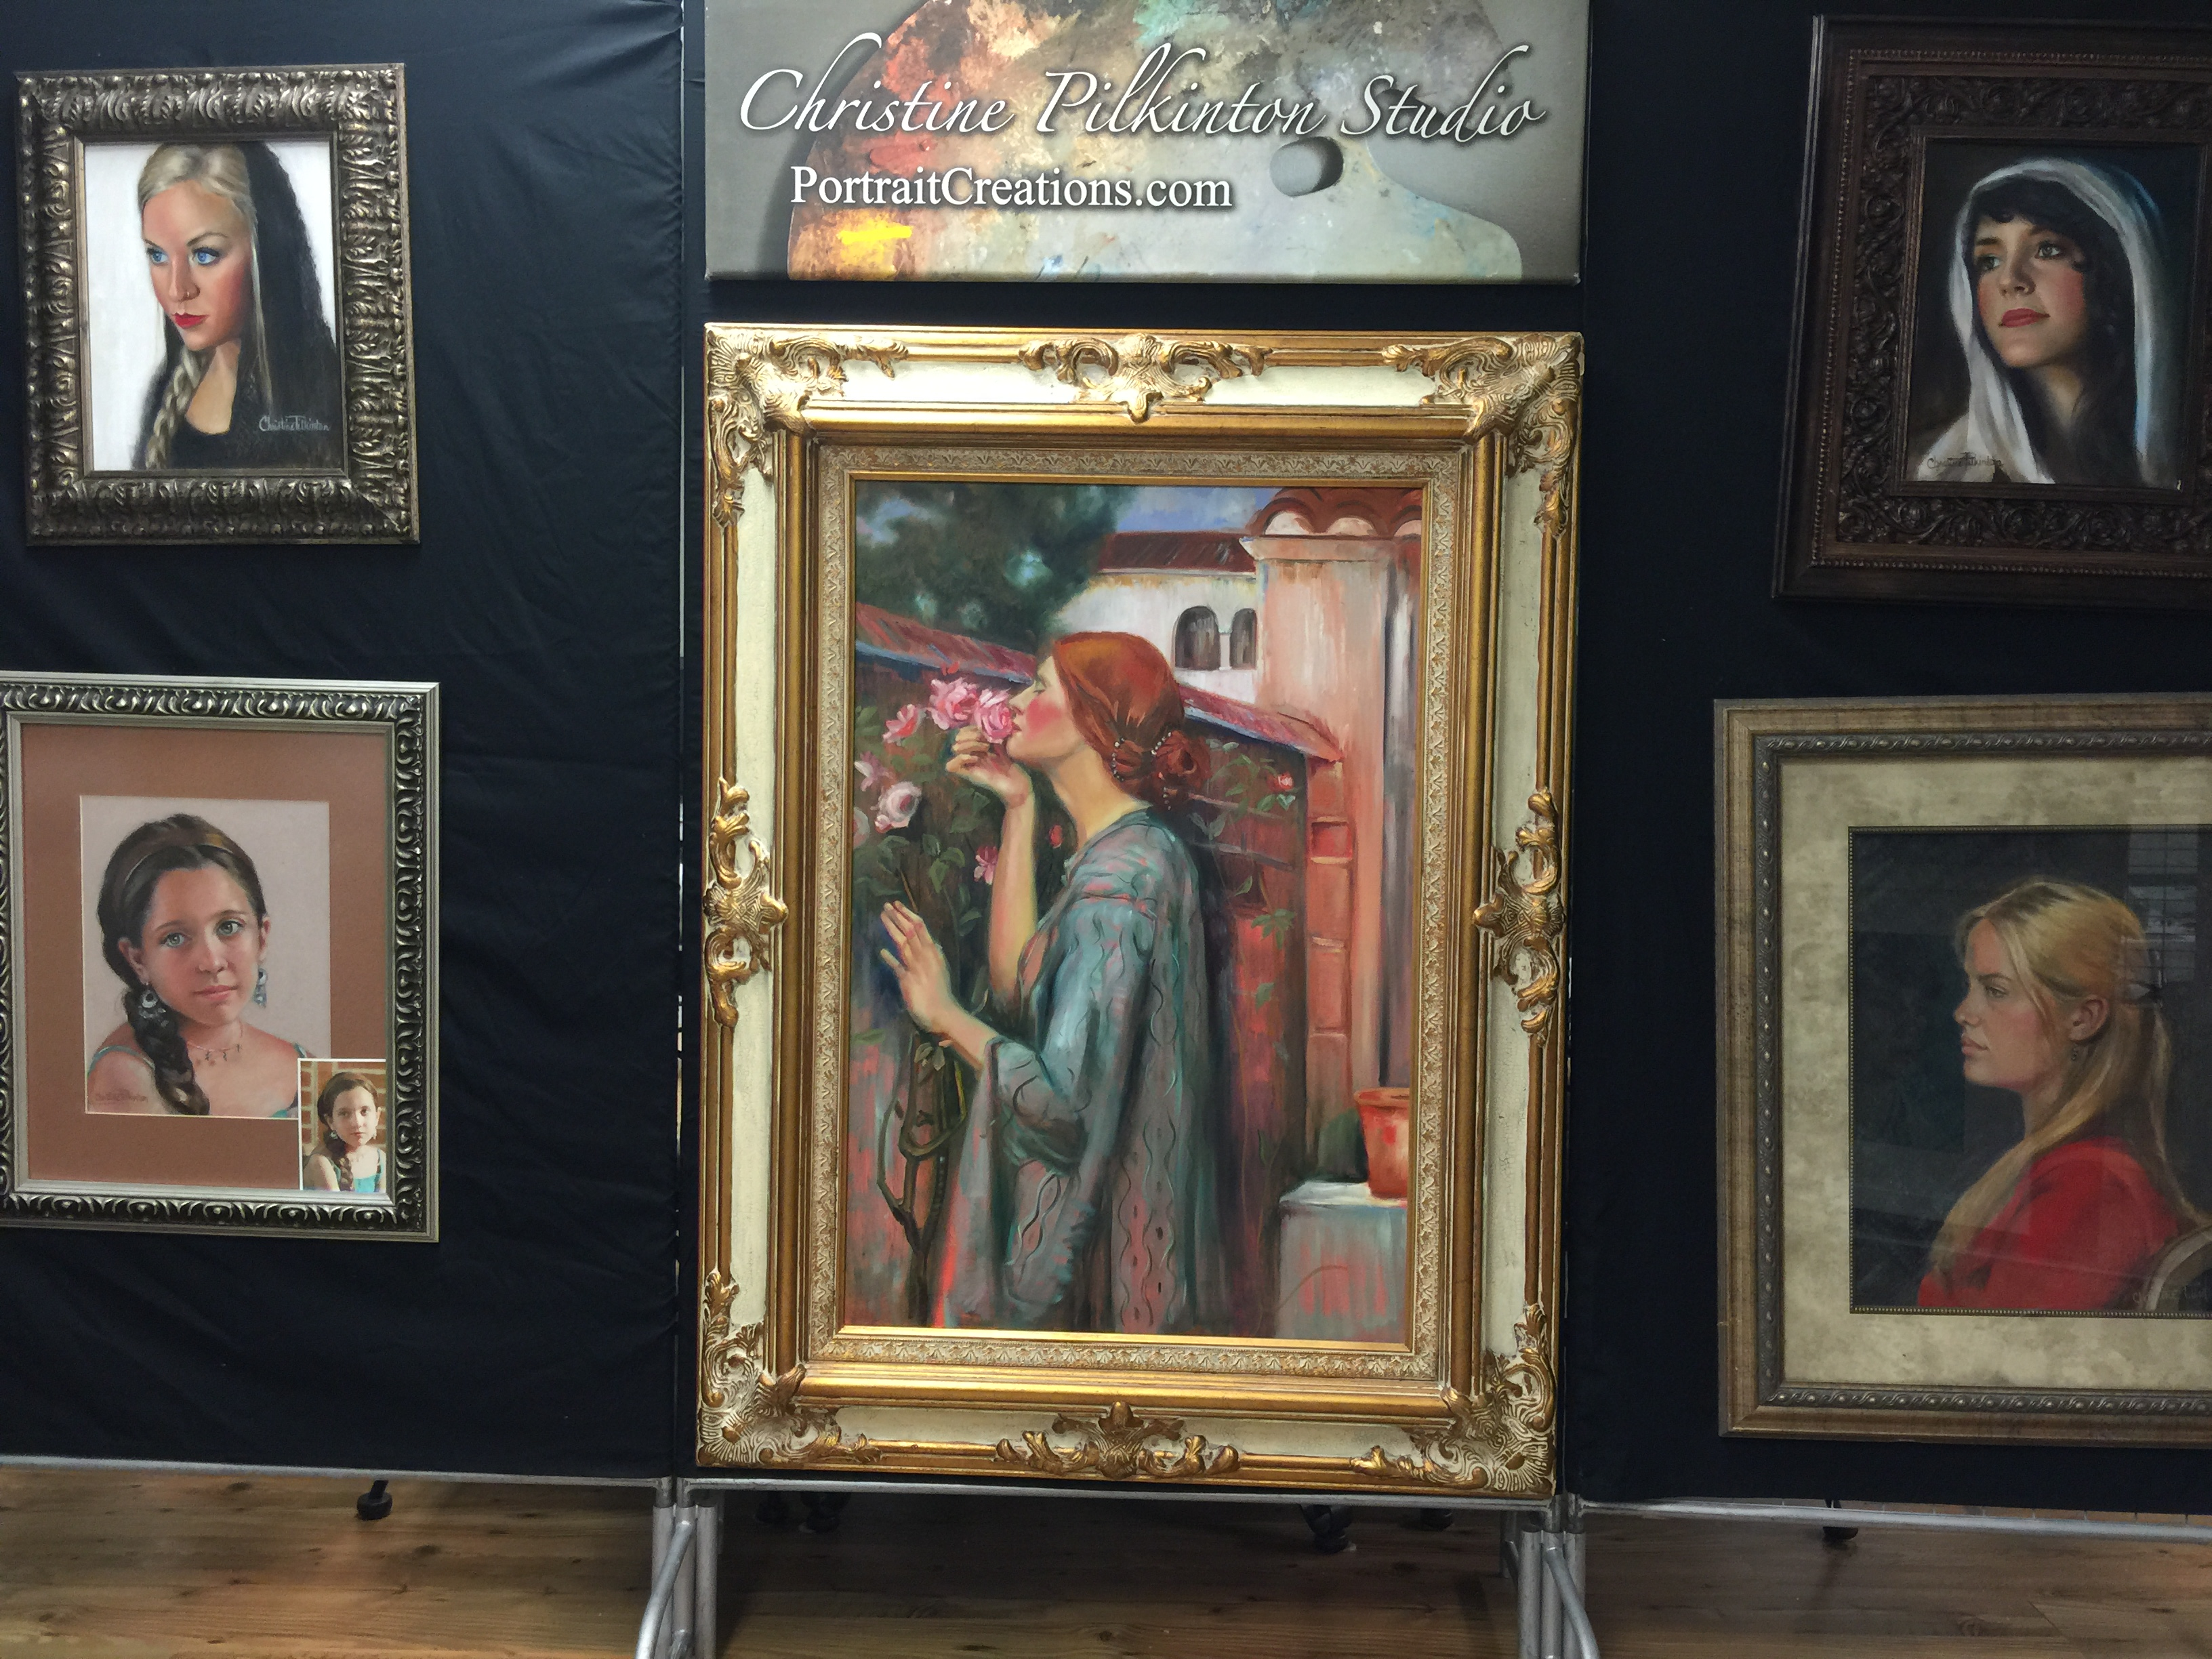 Goodlettsville Art & Antique Festiva